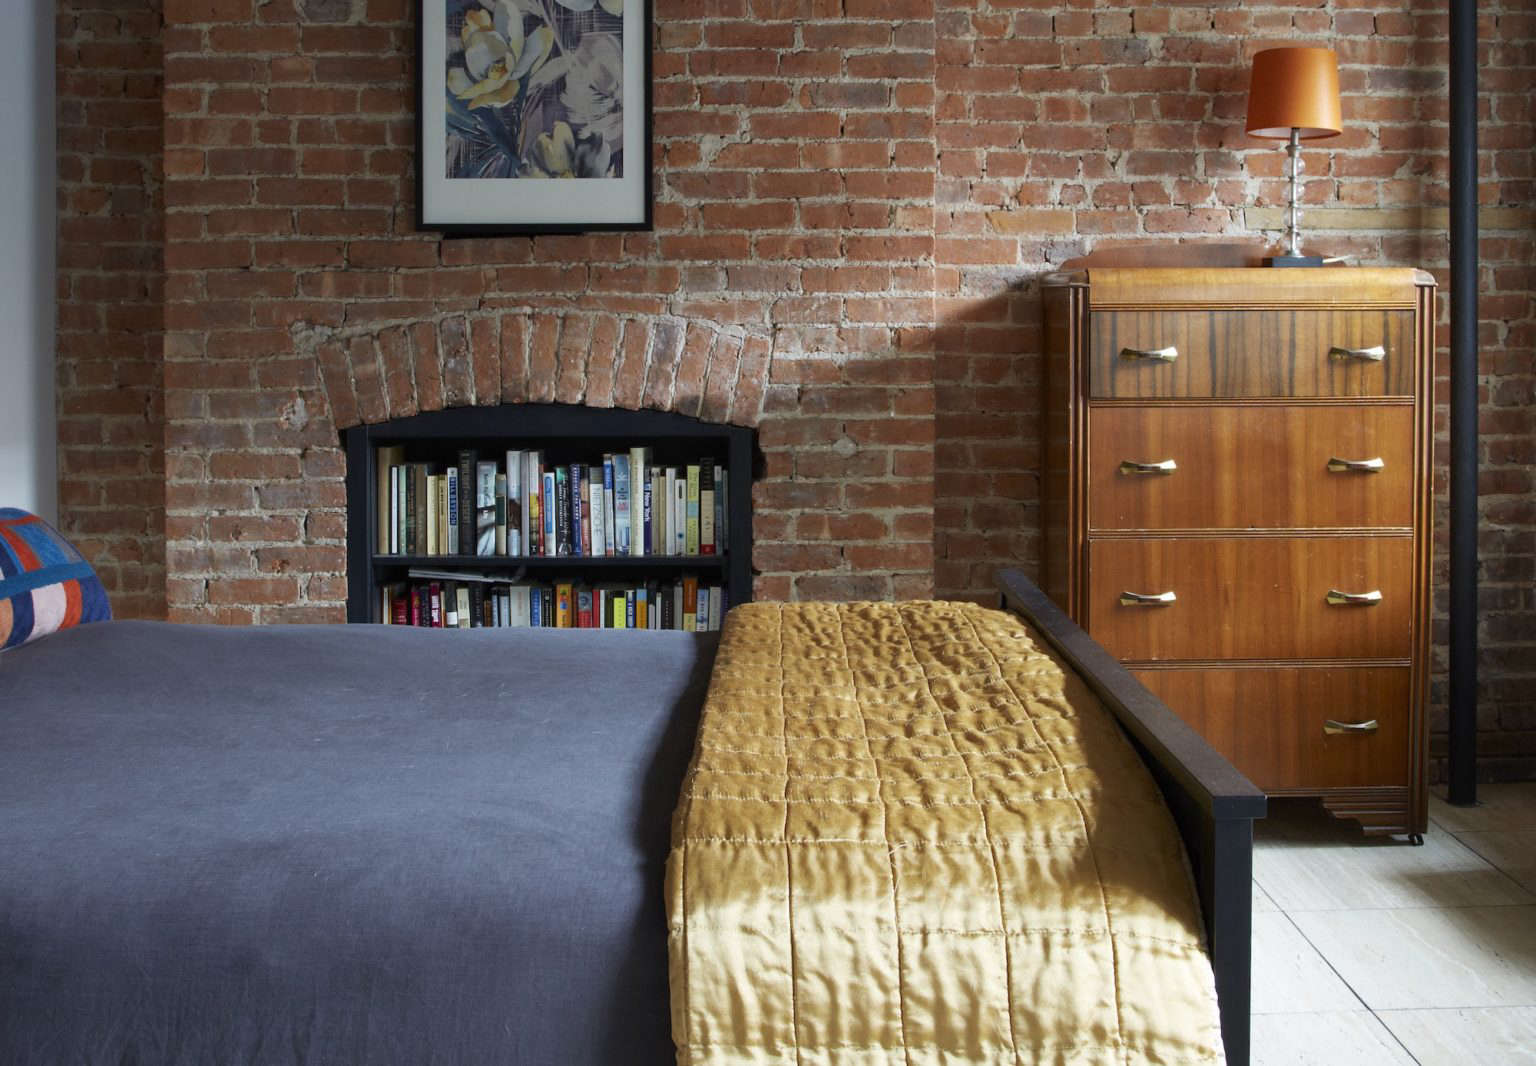 Agencie Fireplace Books Bedroom